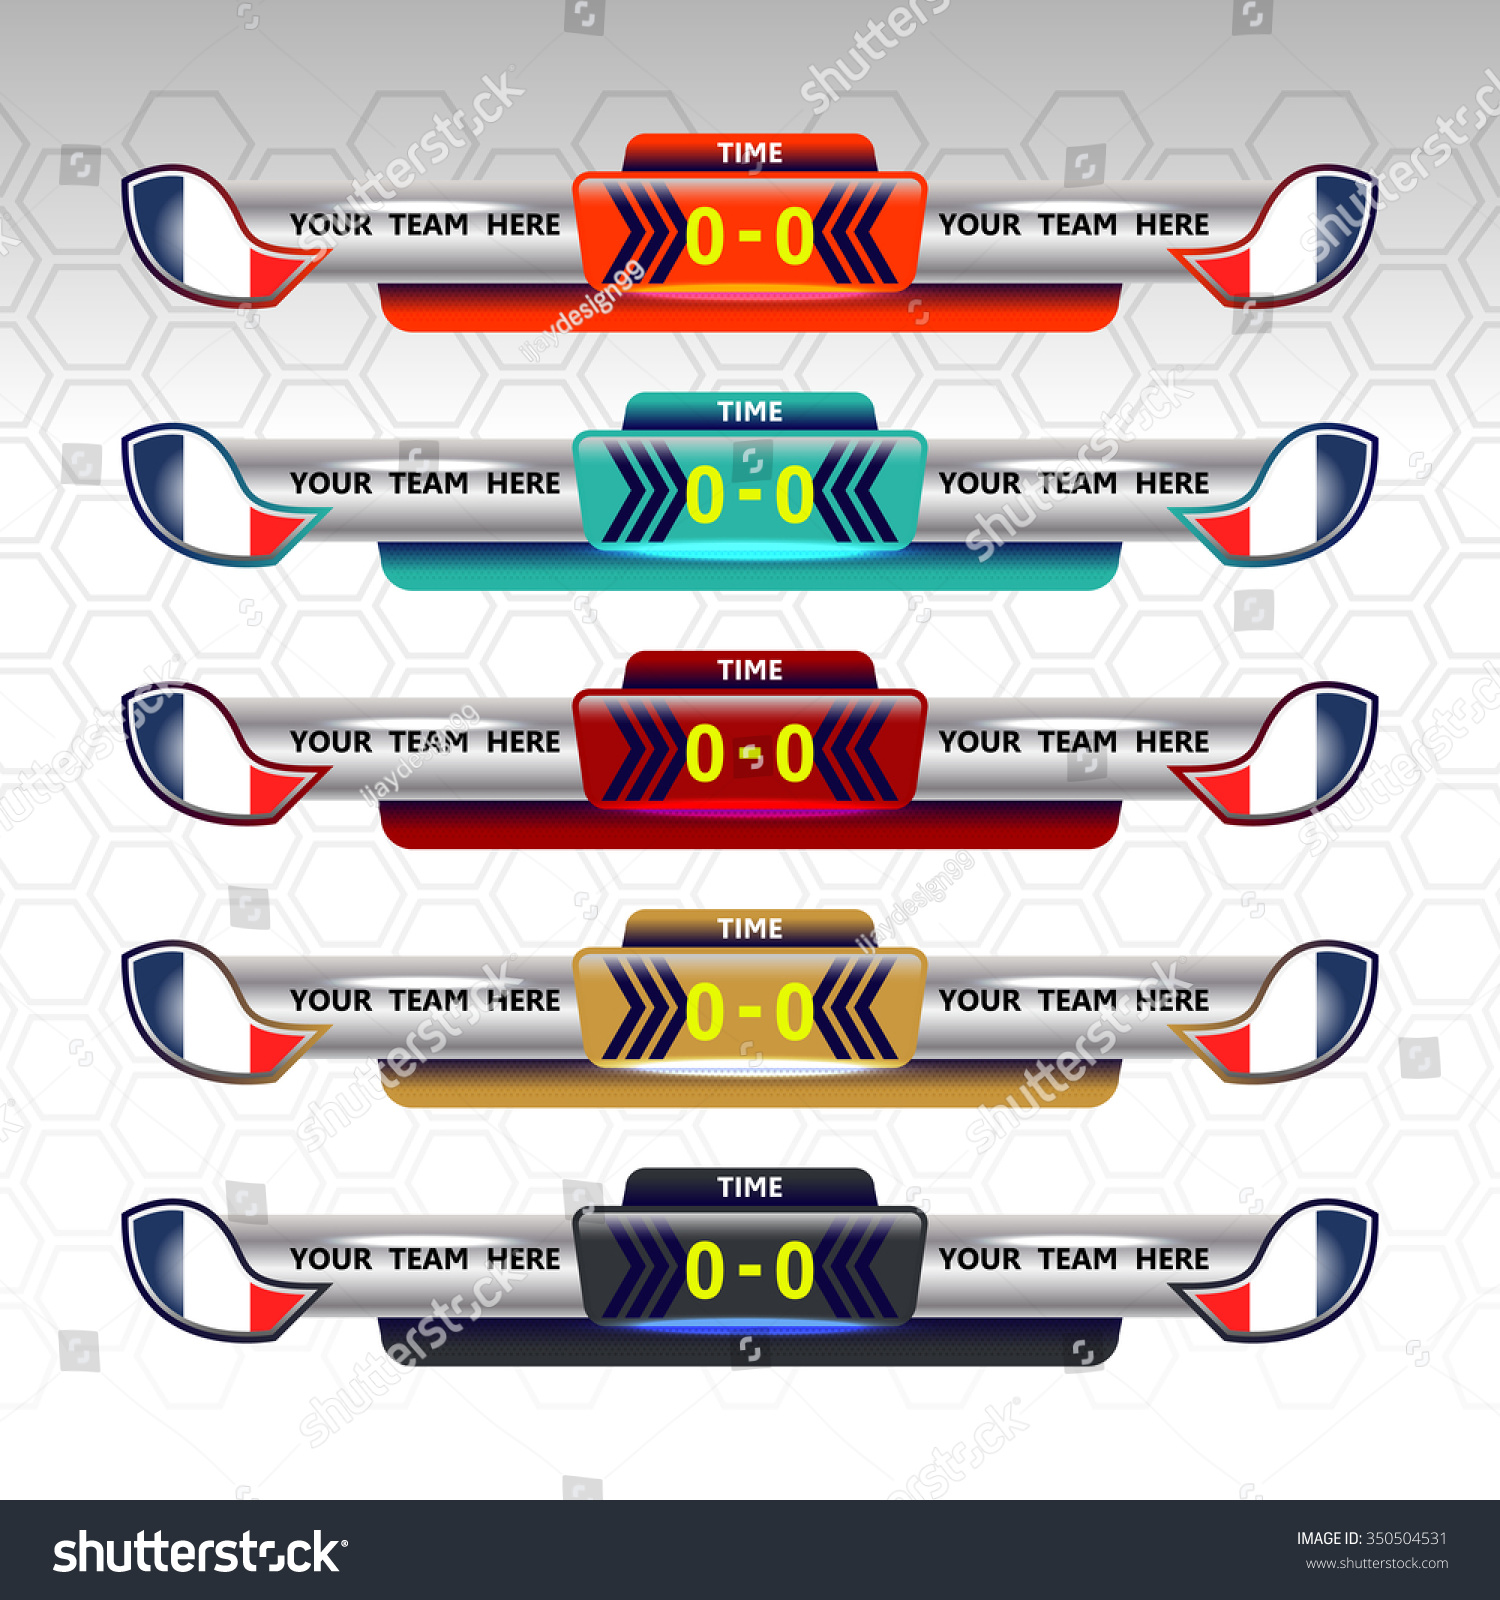 Soccer Scoreboard Template Vector Illustration Vector – Scoreboard Template